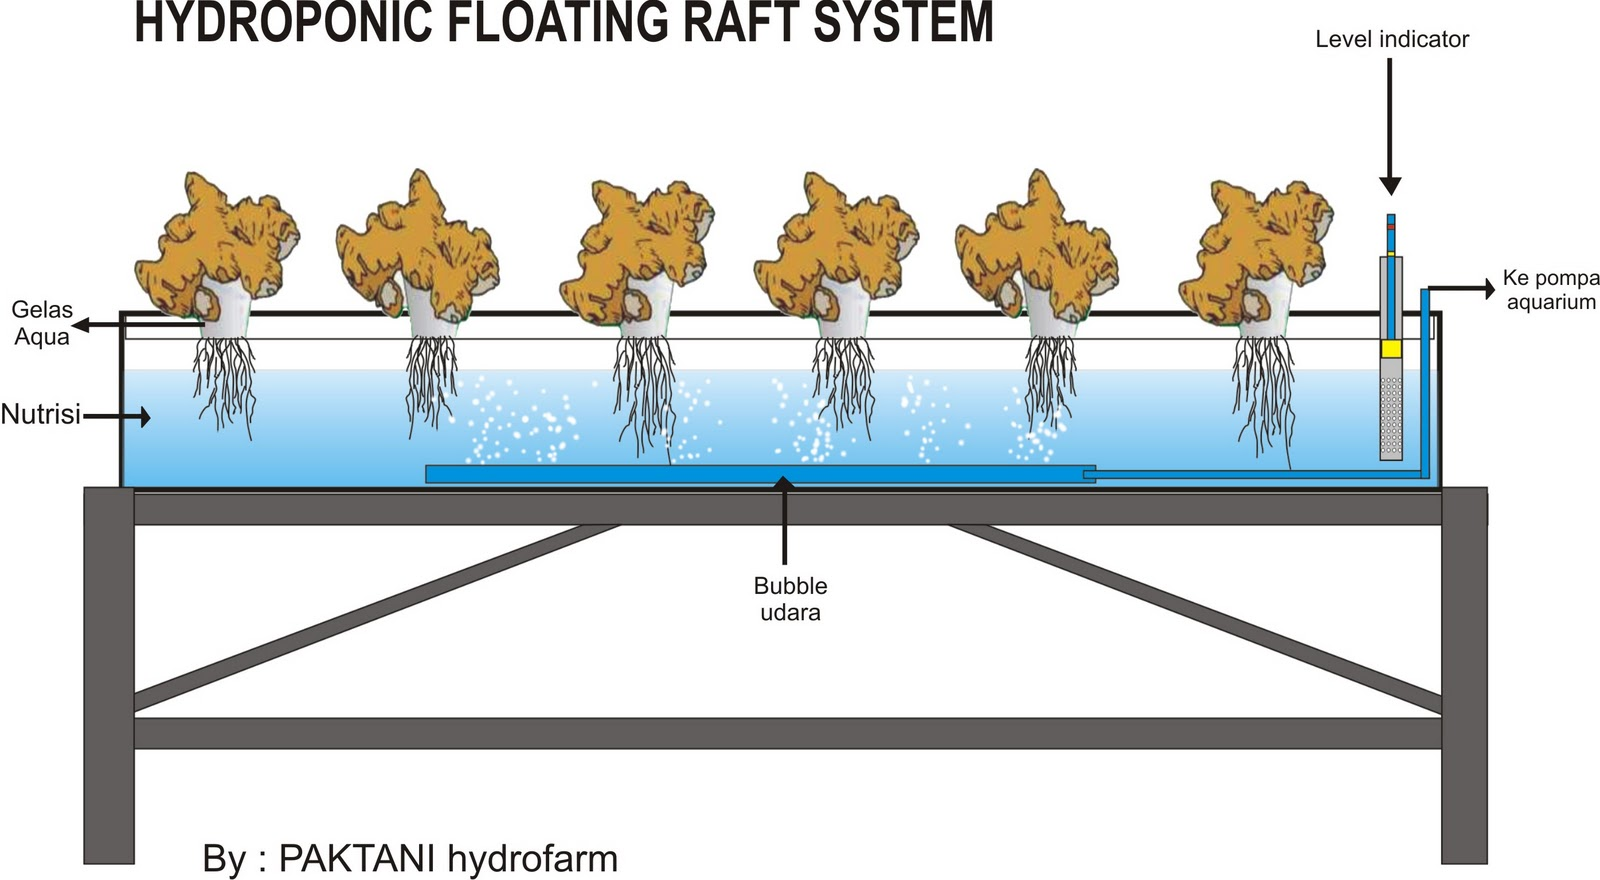 Filter for aquaponics filter free engine image for user for Hydroponic raft system design